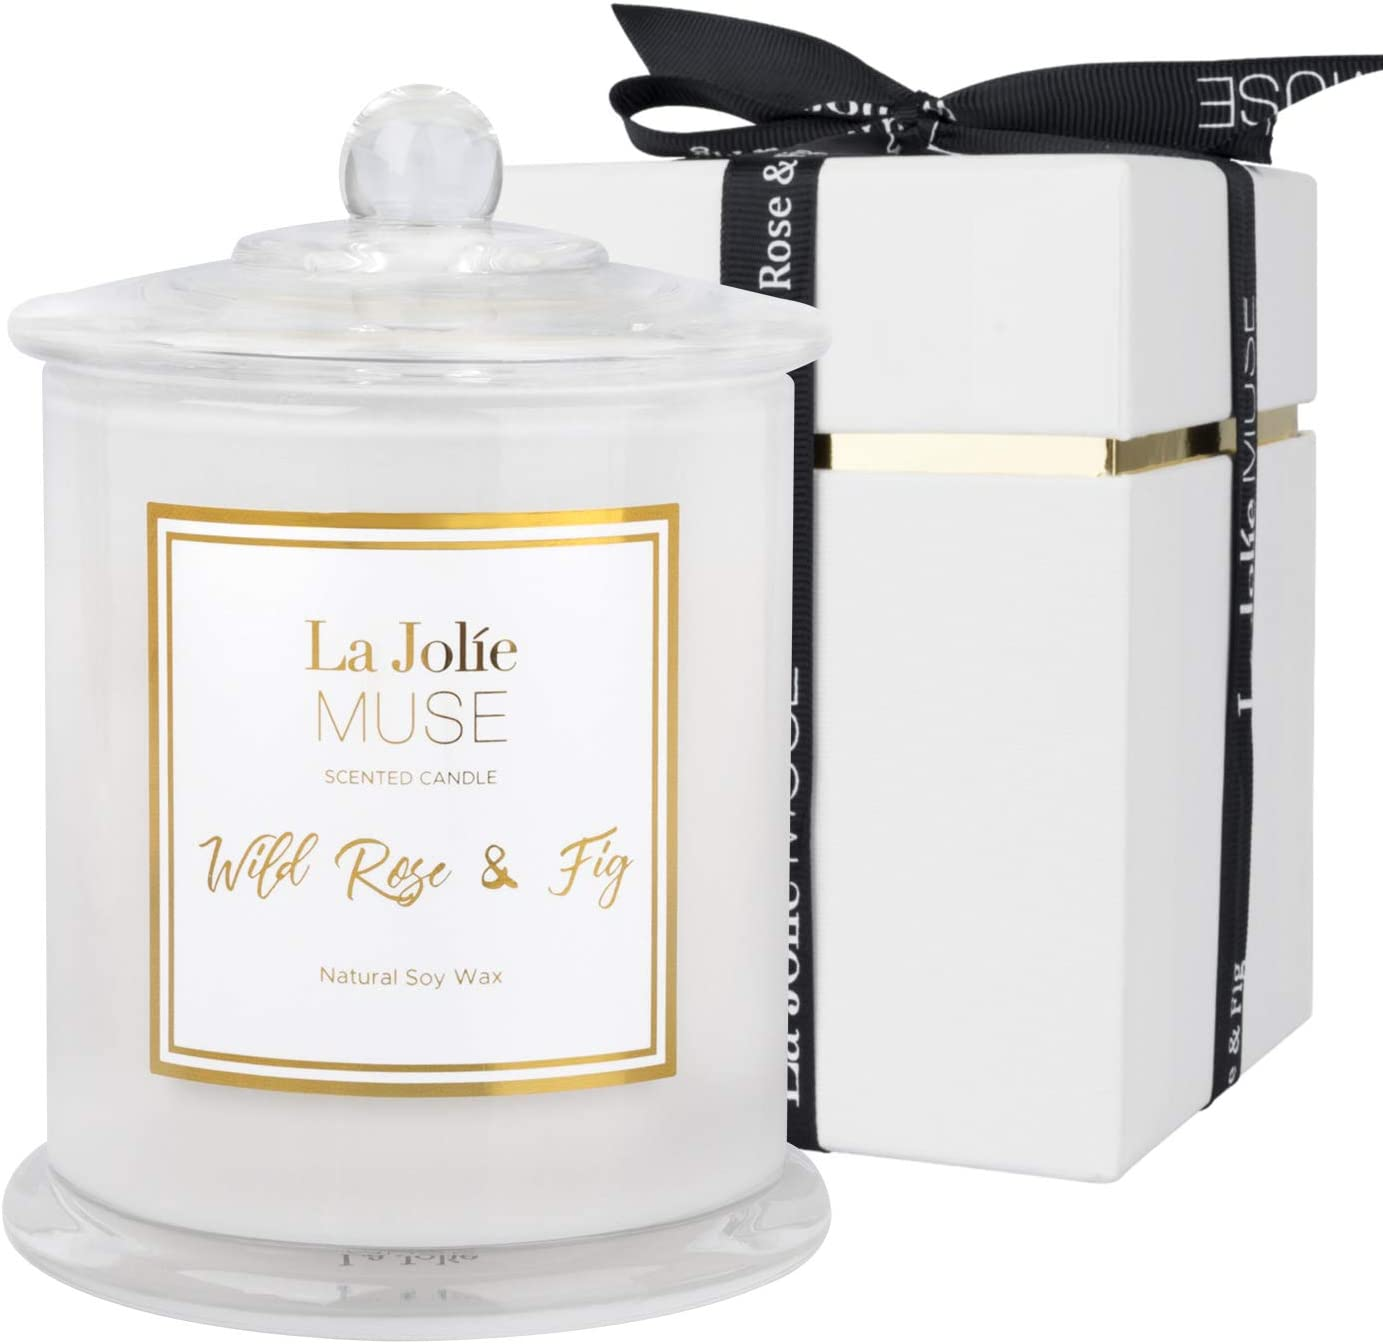 LA JOLIE MUSE Wild Rose & Fig Scented Candle, Natural Soy Candle for Home, 65 Hours Long Burning, White Glass Jar Candle, Candle Gift for Women